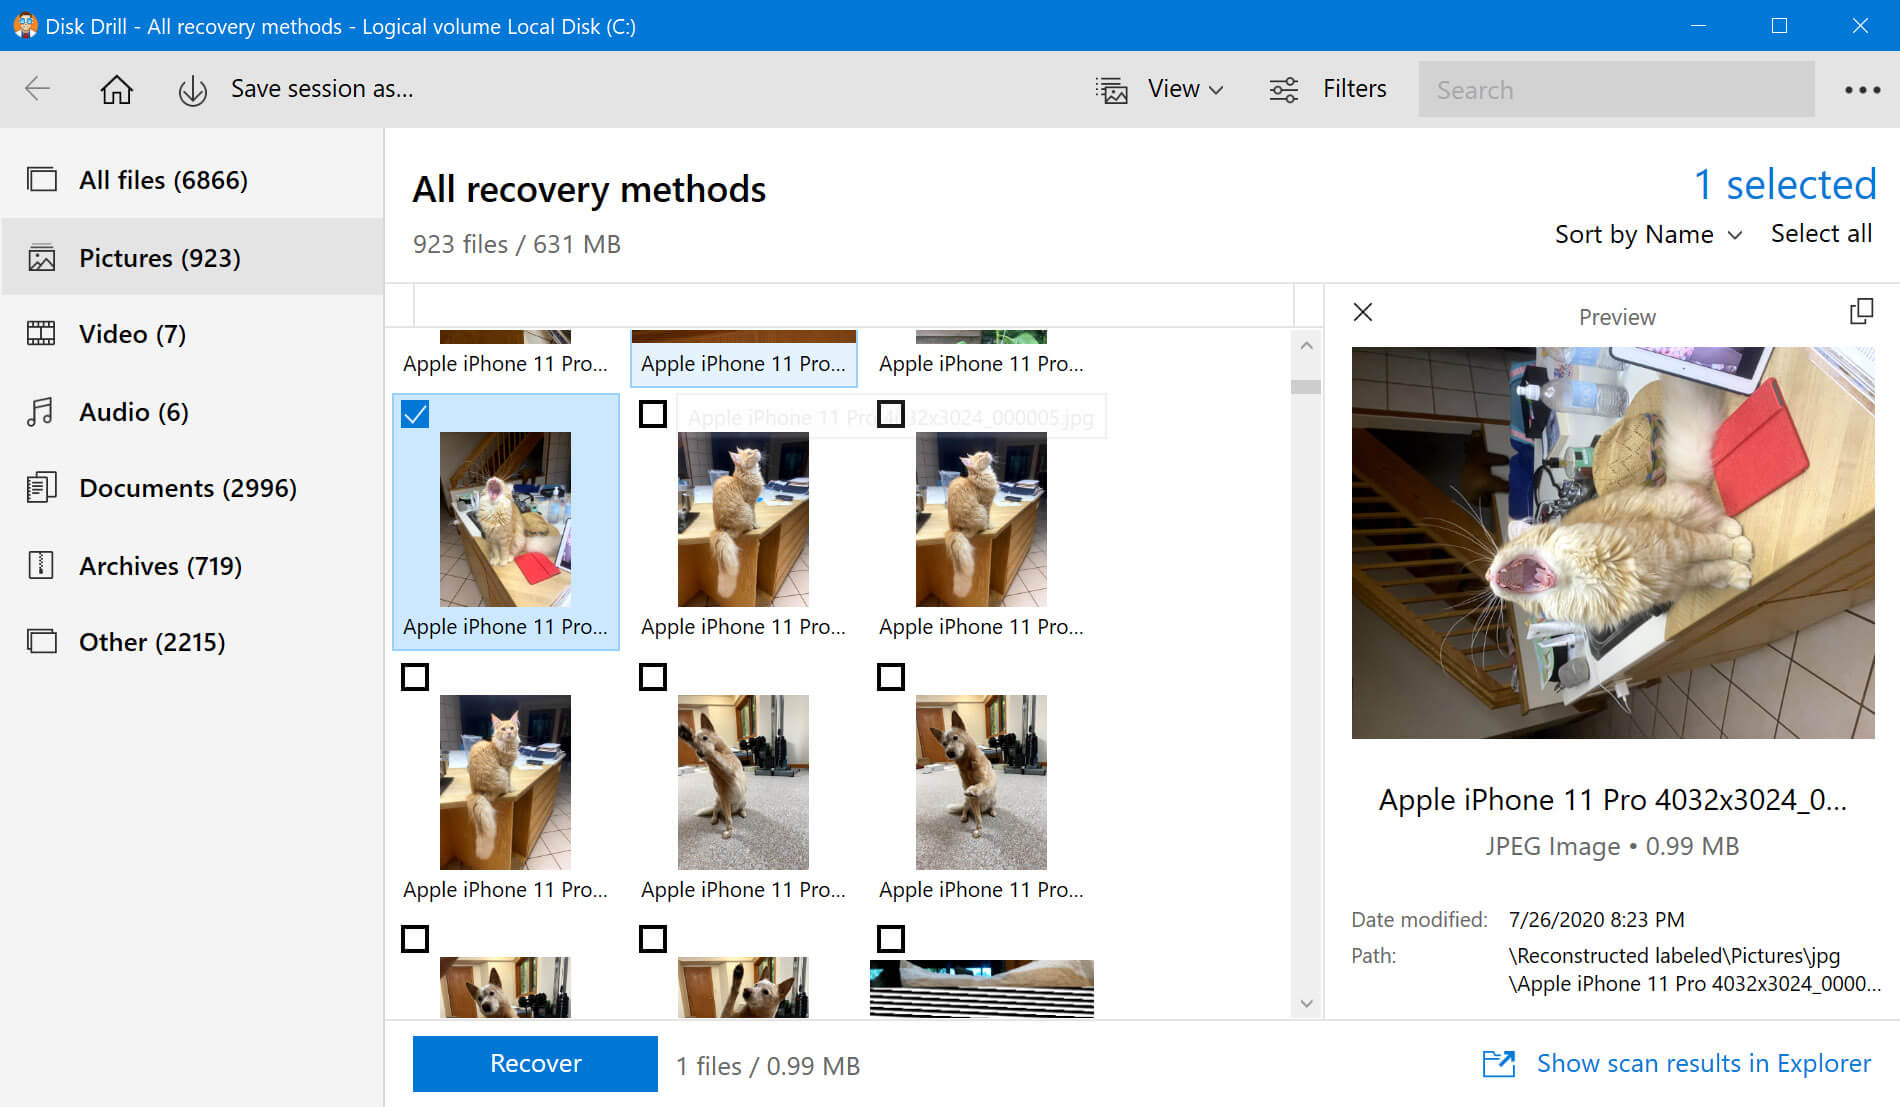 preview the files before recovery